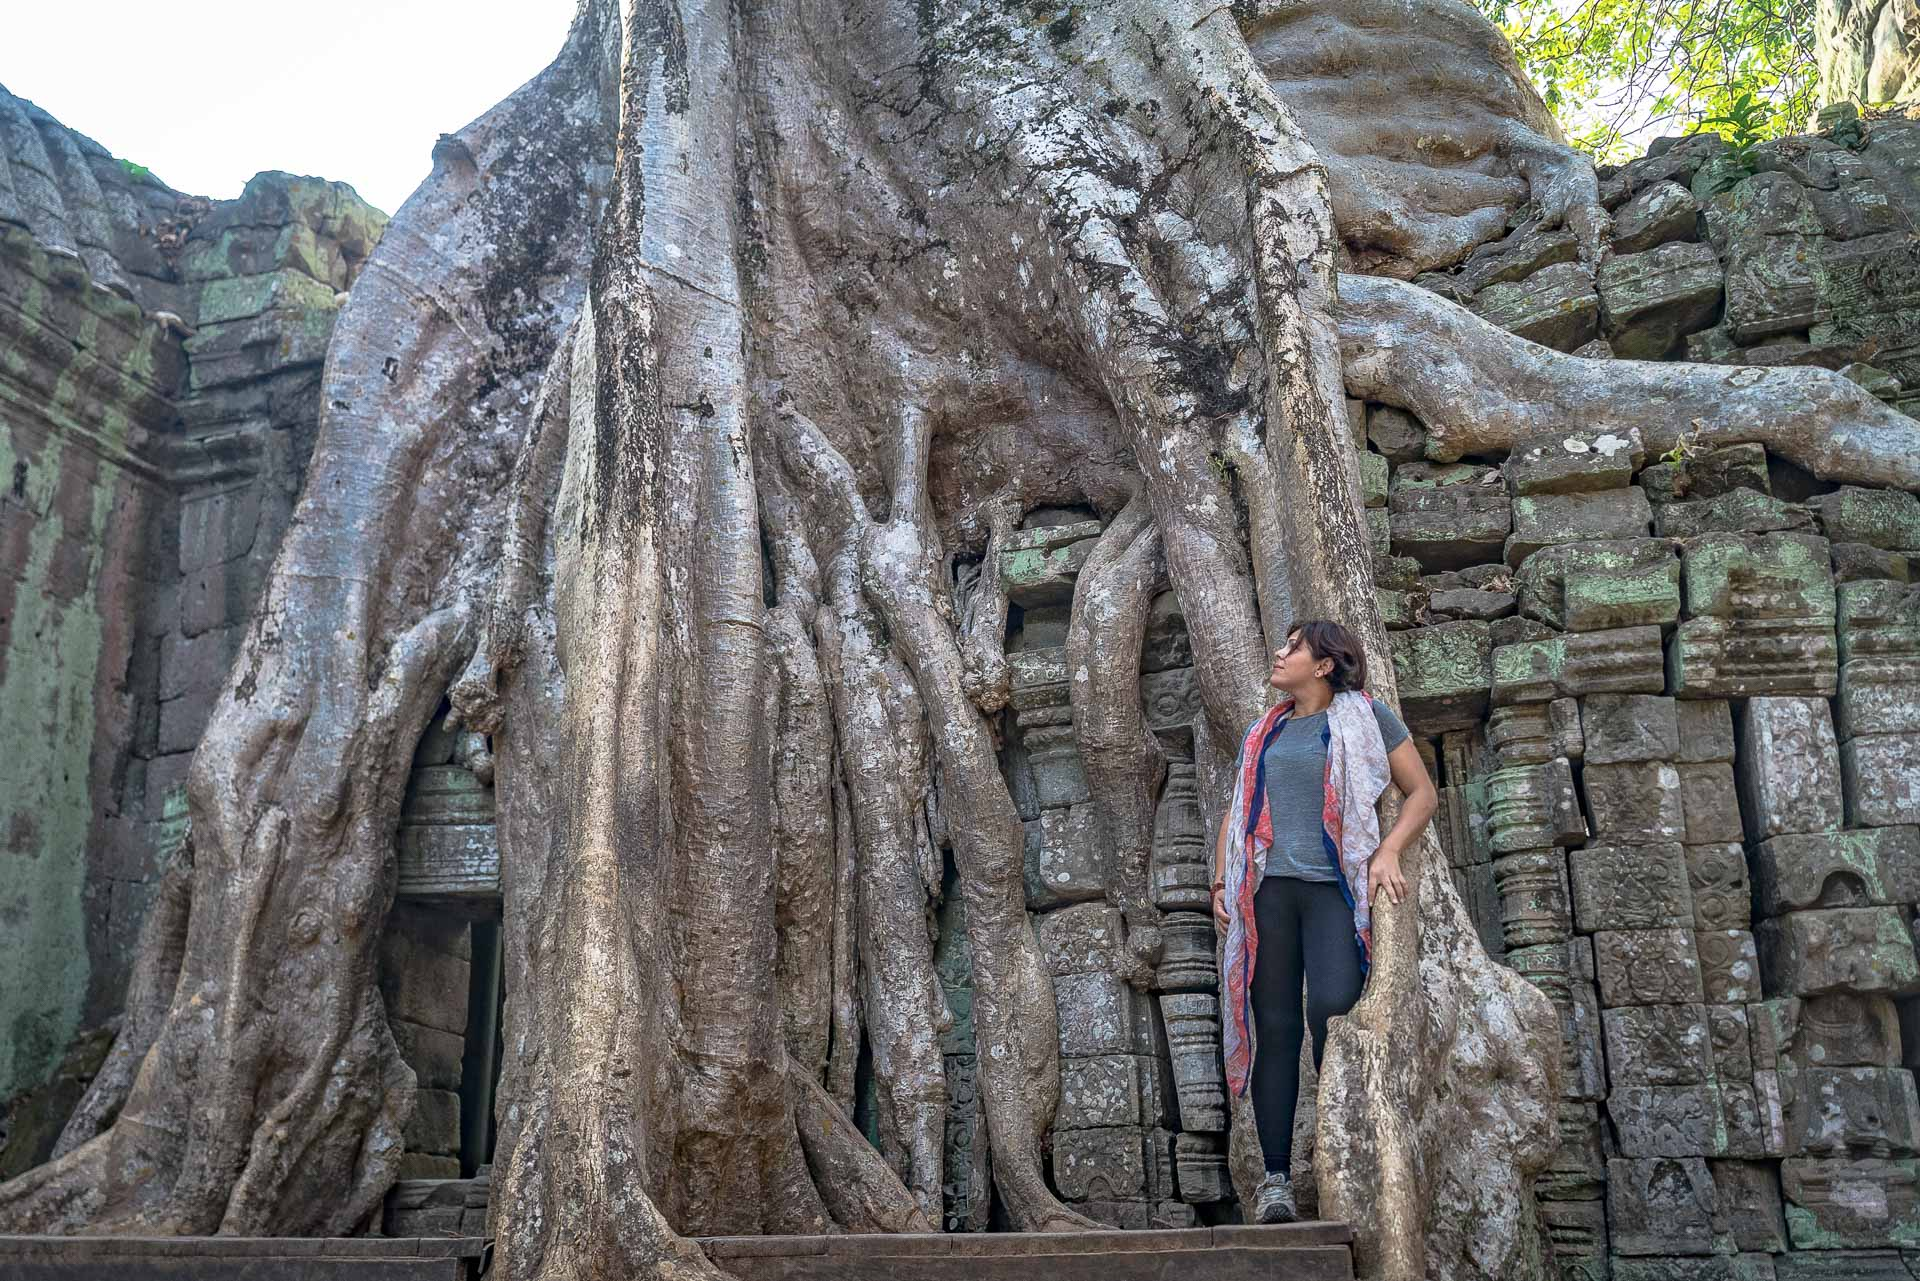 Lesvoyageuses-guide-voyage-Siem-reap-angkor-temples-Cambodge-34